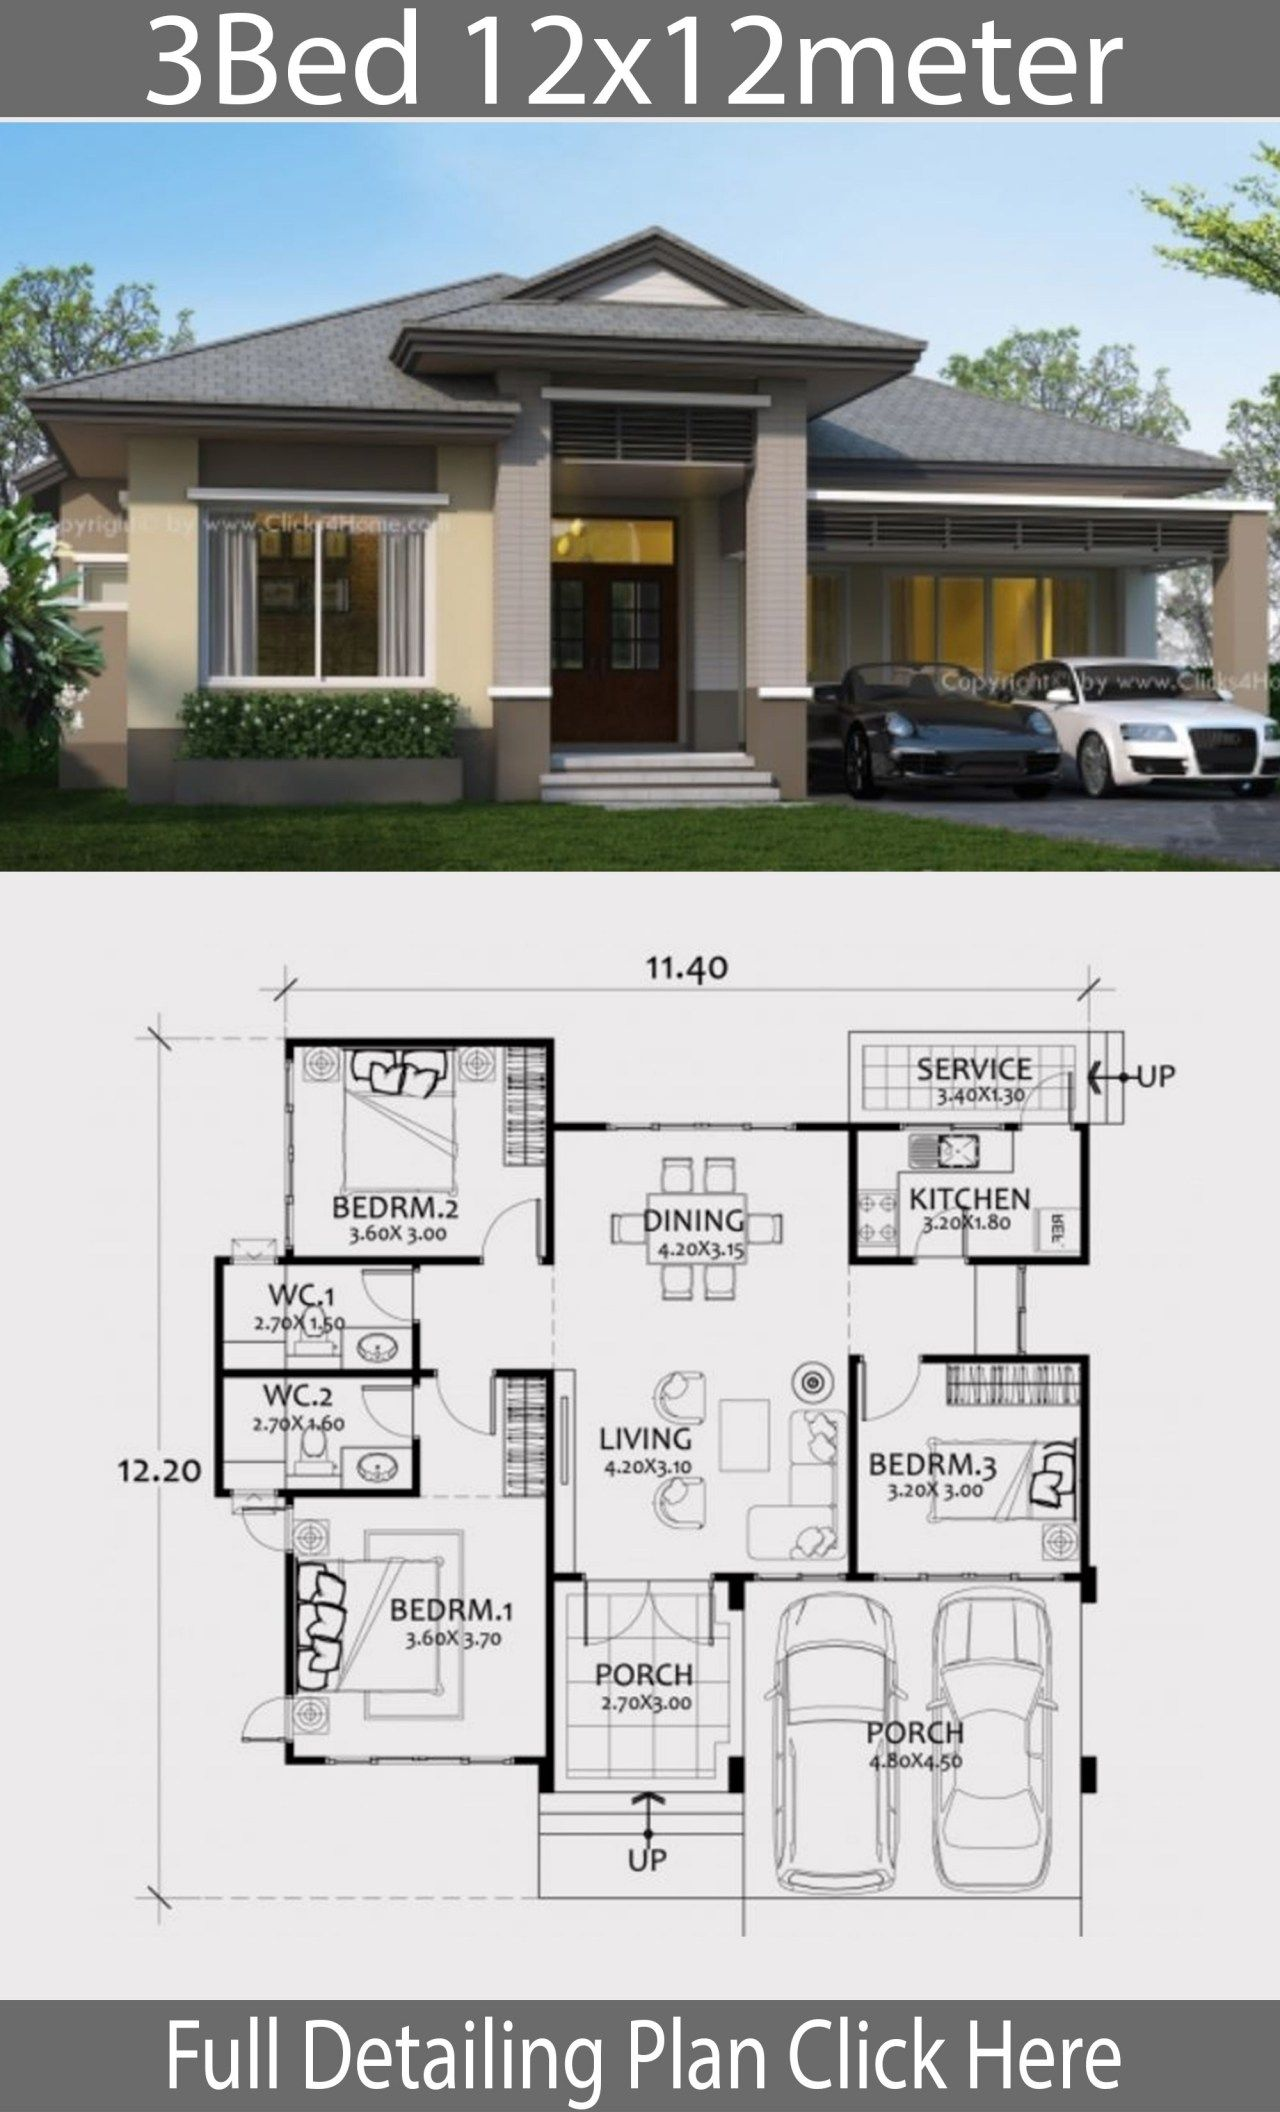 Home Design Plan 12x12m With 3 Bedrooms Bungalow Style House